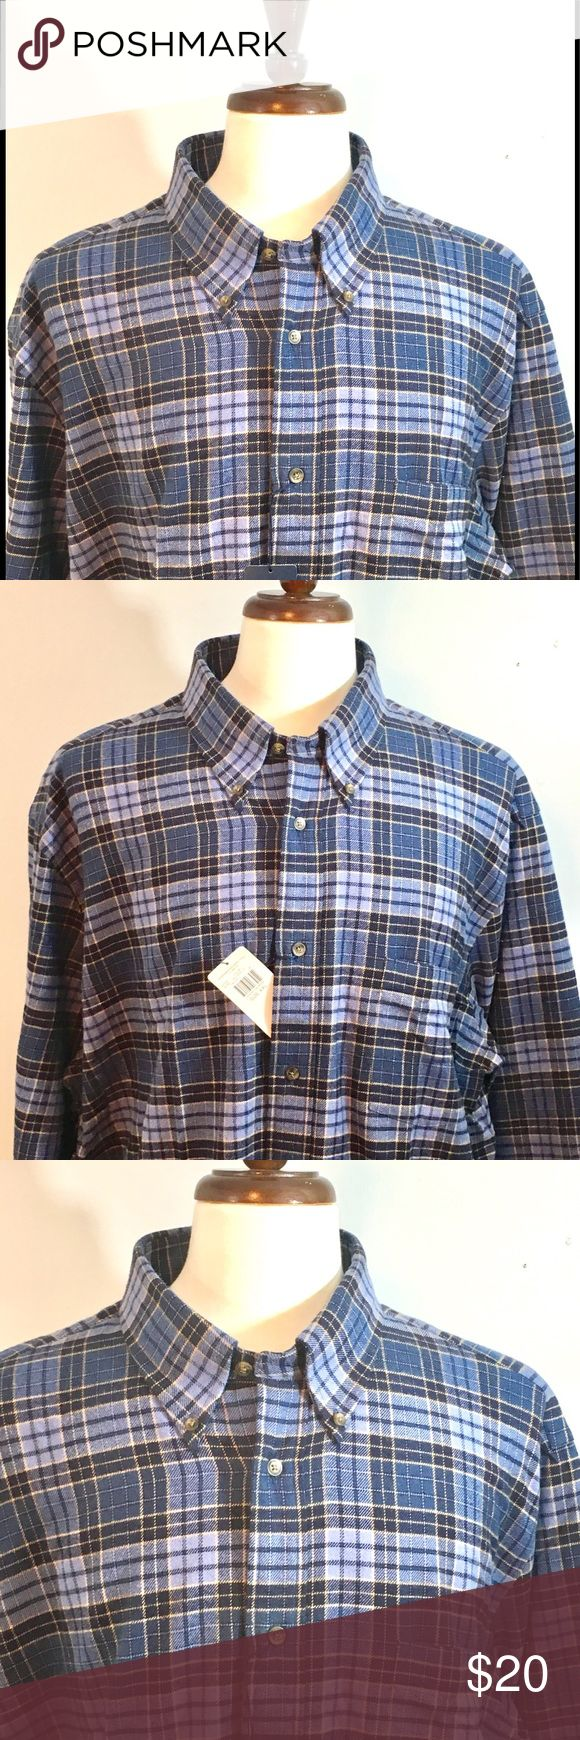 GRANT THOMAS NWT PLAID 2XL FLANNEL Grant Thomas Plaid Button-up shirt in size XXL. Never worn, new with Tag! Retails for 39.99. Thomas Grant Shirts Casual Button Down Shirts